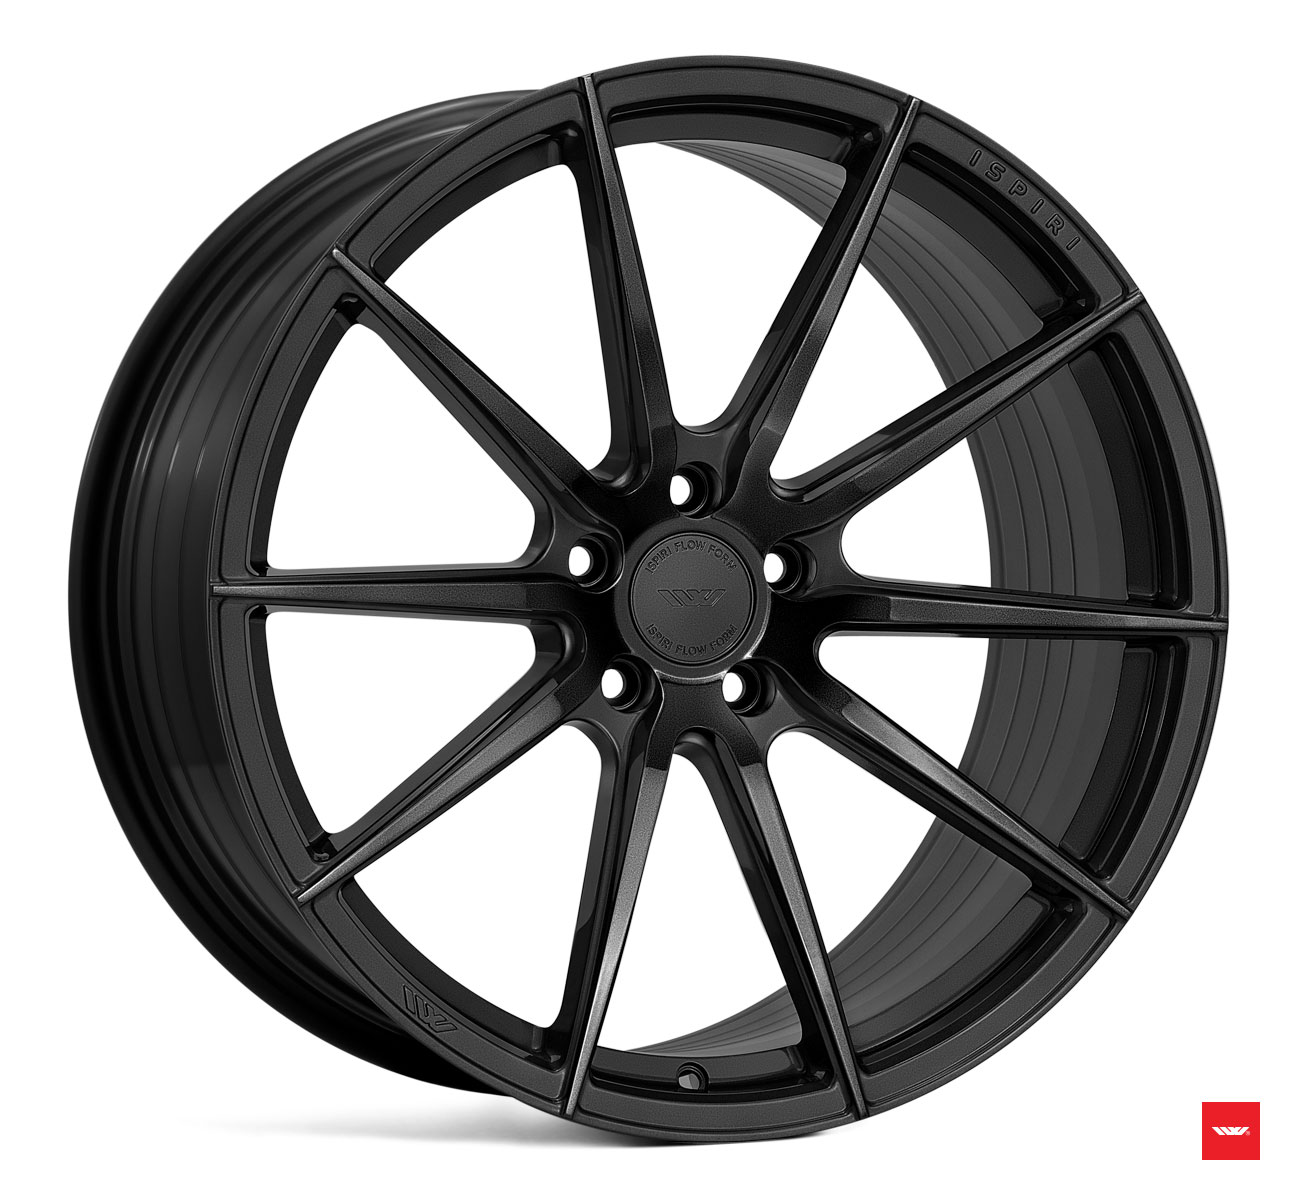 "NEW 20"" ISPIRI FFR1 MULTI-SPOKE ALLOY WHEELS IN CORSA BLACK, DEEPER CONCAVE 10.5"" REARS"